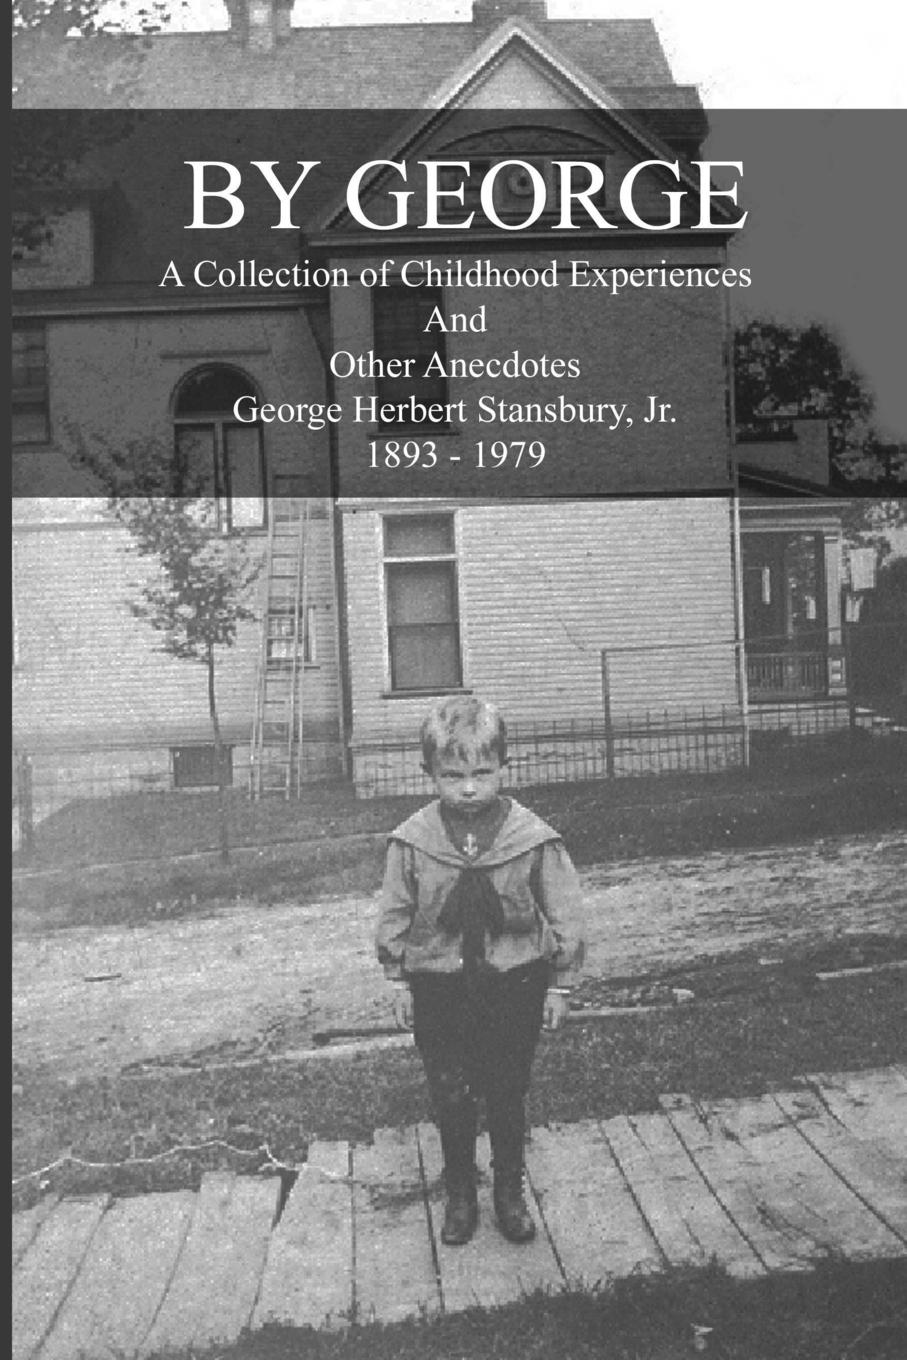 Jr. George Herbert Stansbury By George - A Collection of Childhood Experiences and Other Anecdotes boy george köln